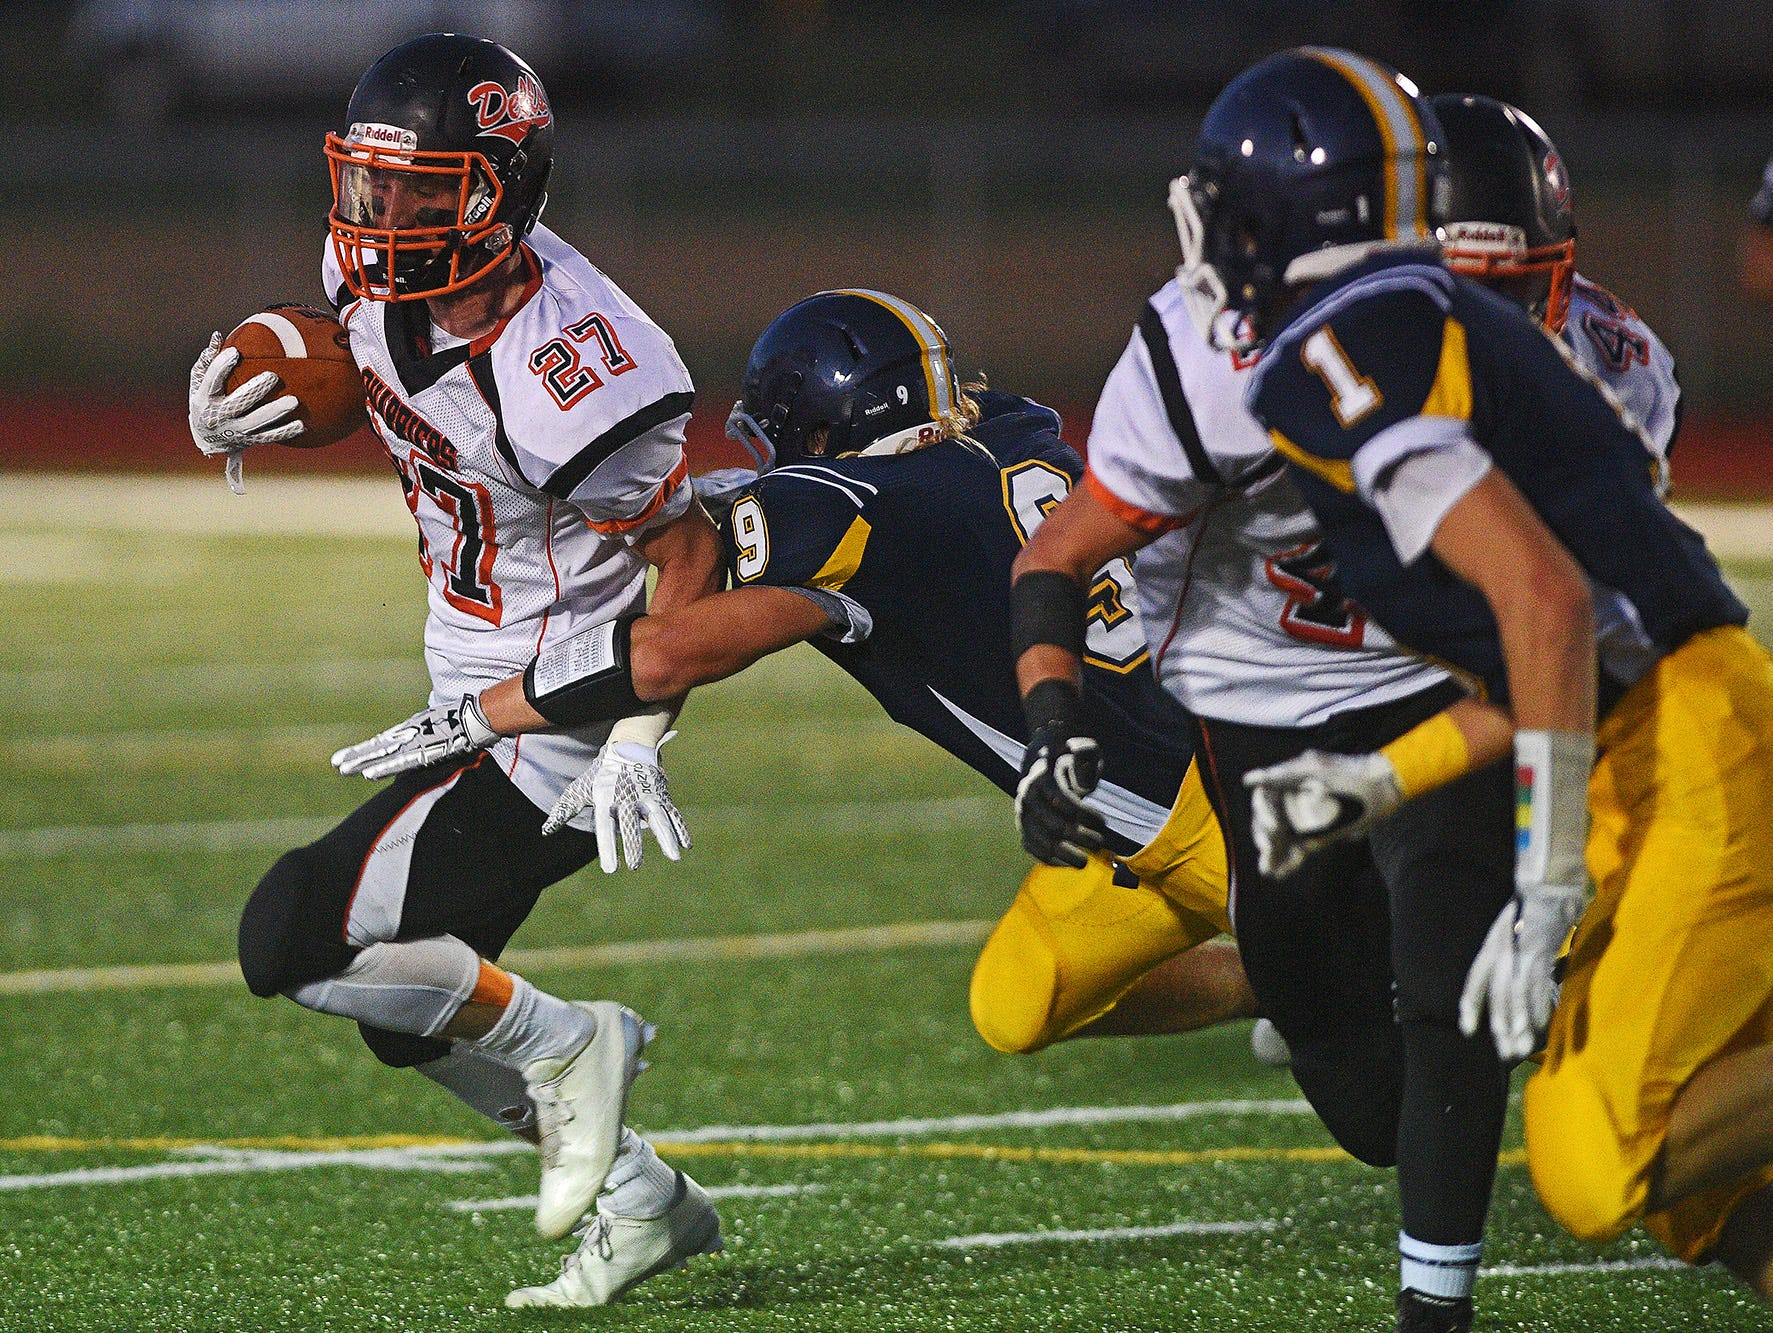 Dell Rapids' Seth Andersen (27) carries the ball as Tea Area's Logan Hoon (9) tackles him during a game Friday, Sept. 16, 2016, at Tea Area High School in Tea, S.D.